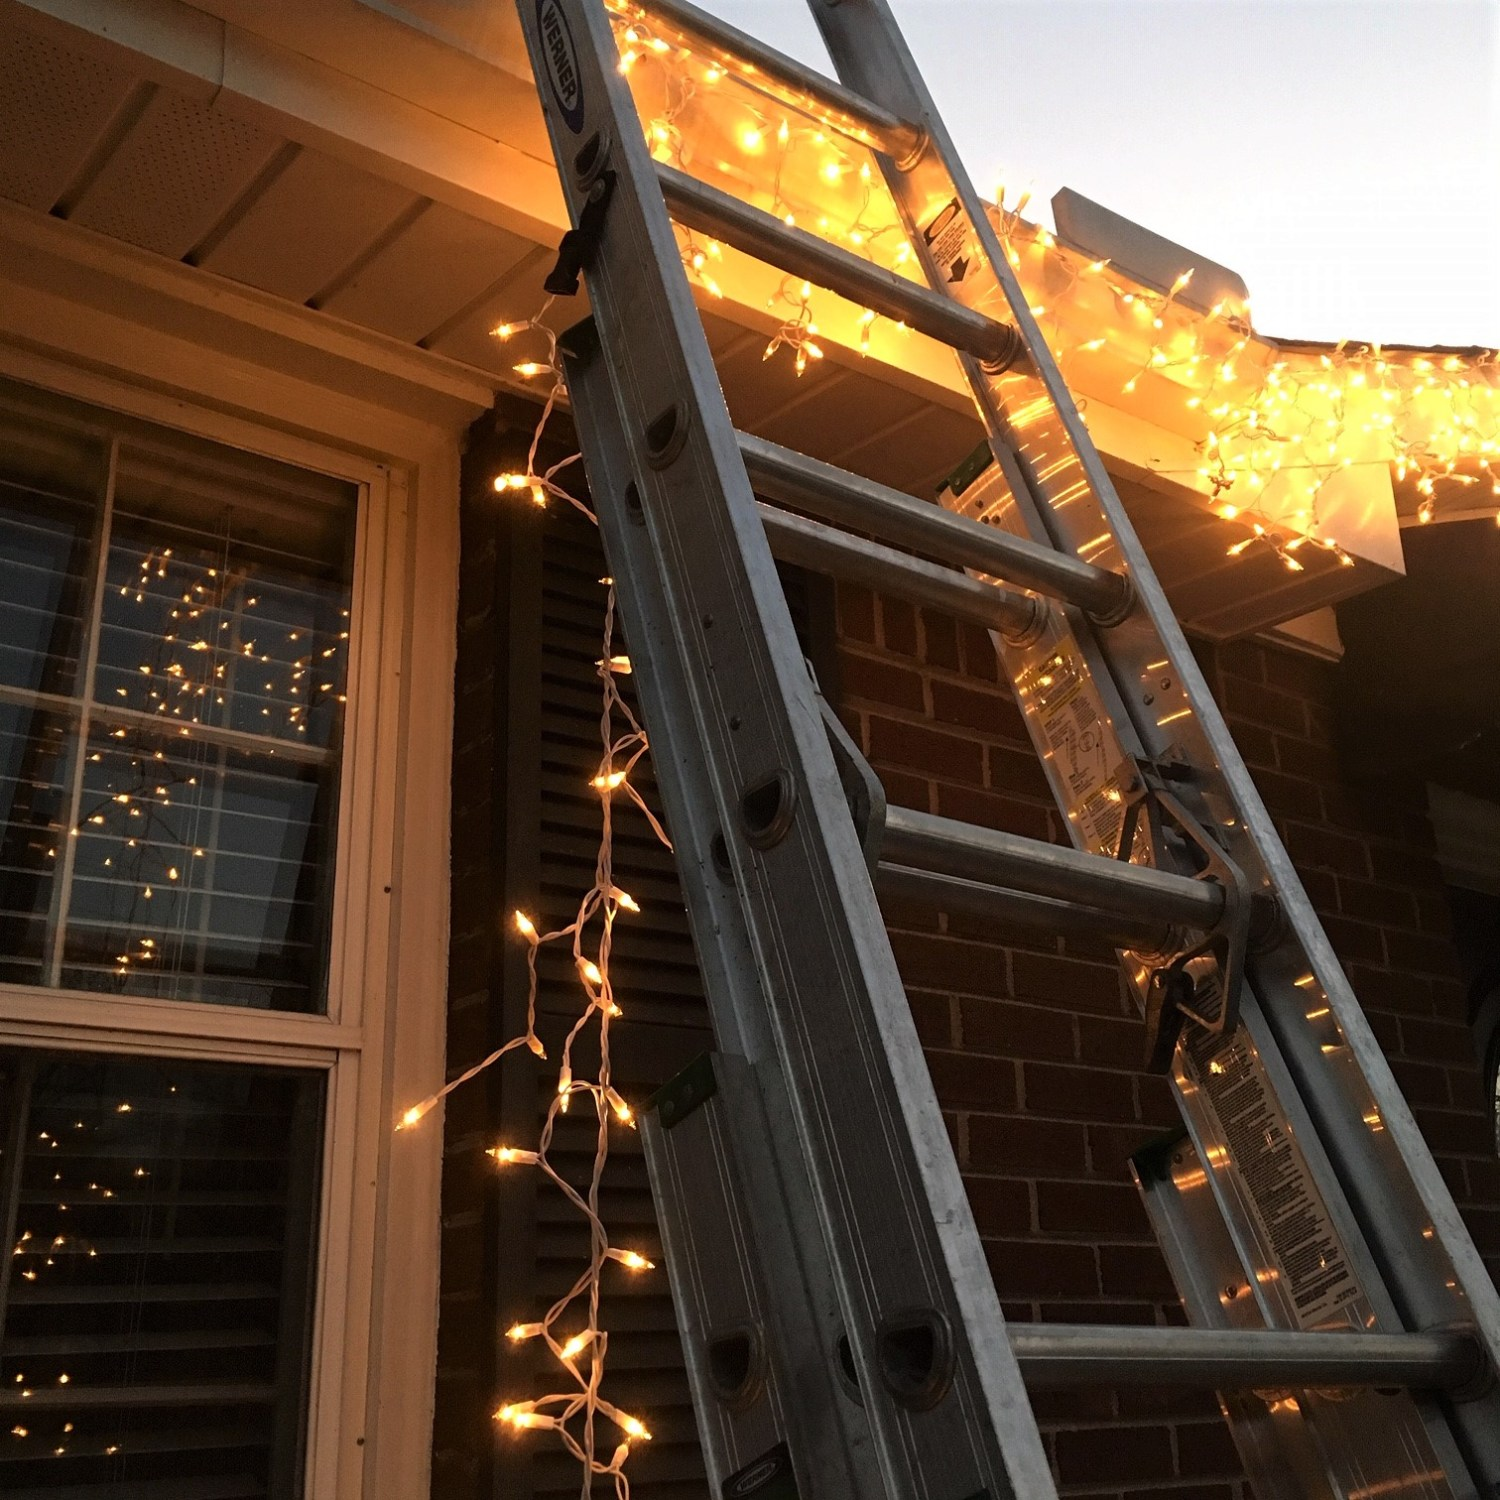 How to Stop Blinking Christmas Lights (Easy Fix)